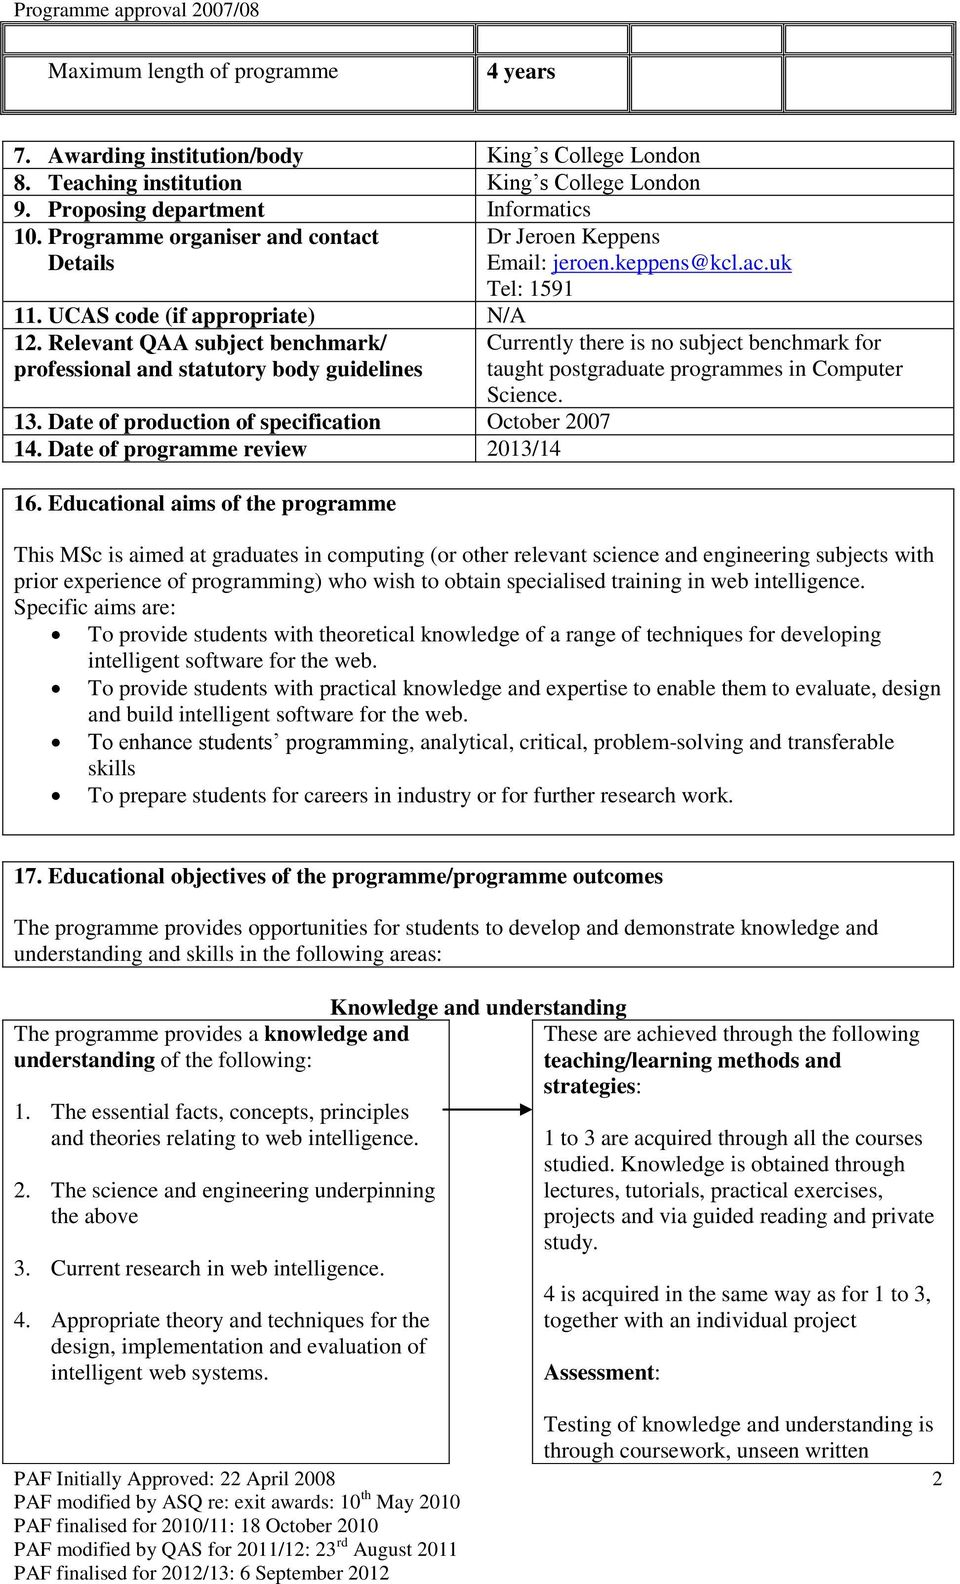 Date of production of specification October 2007 14. Date of programme review 2013/14 16. Educational aims of the programme Dr Jeroen Keppens Email: jeroen.keppens@kcl.ac.